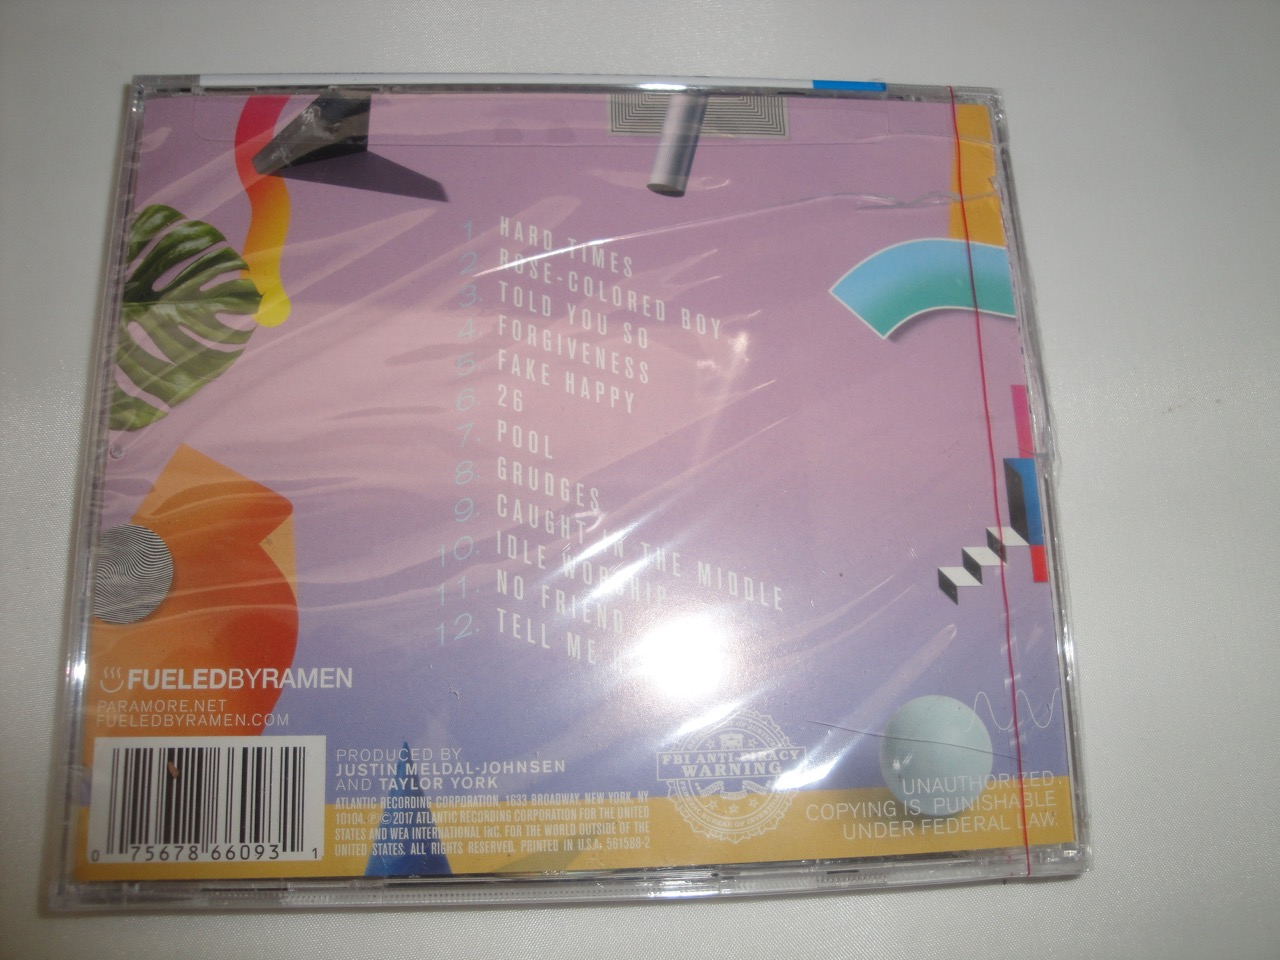 Paramore - After Laughter CD $9.99